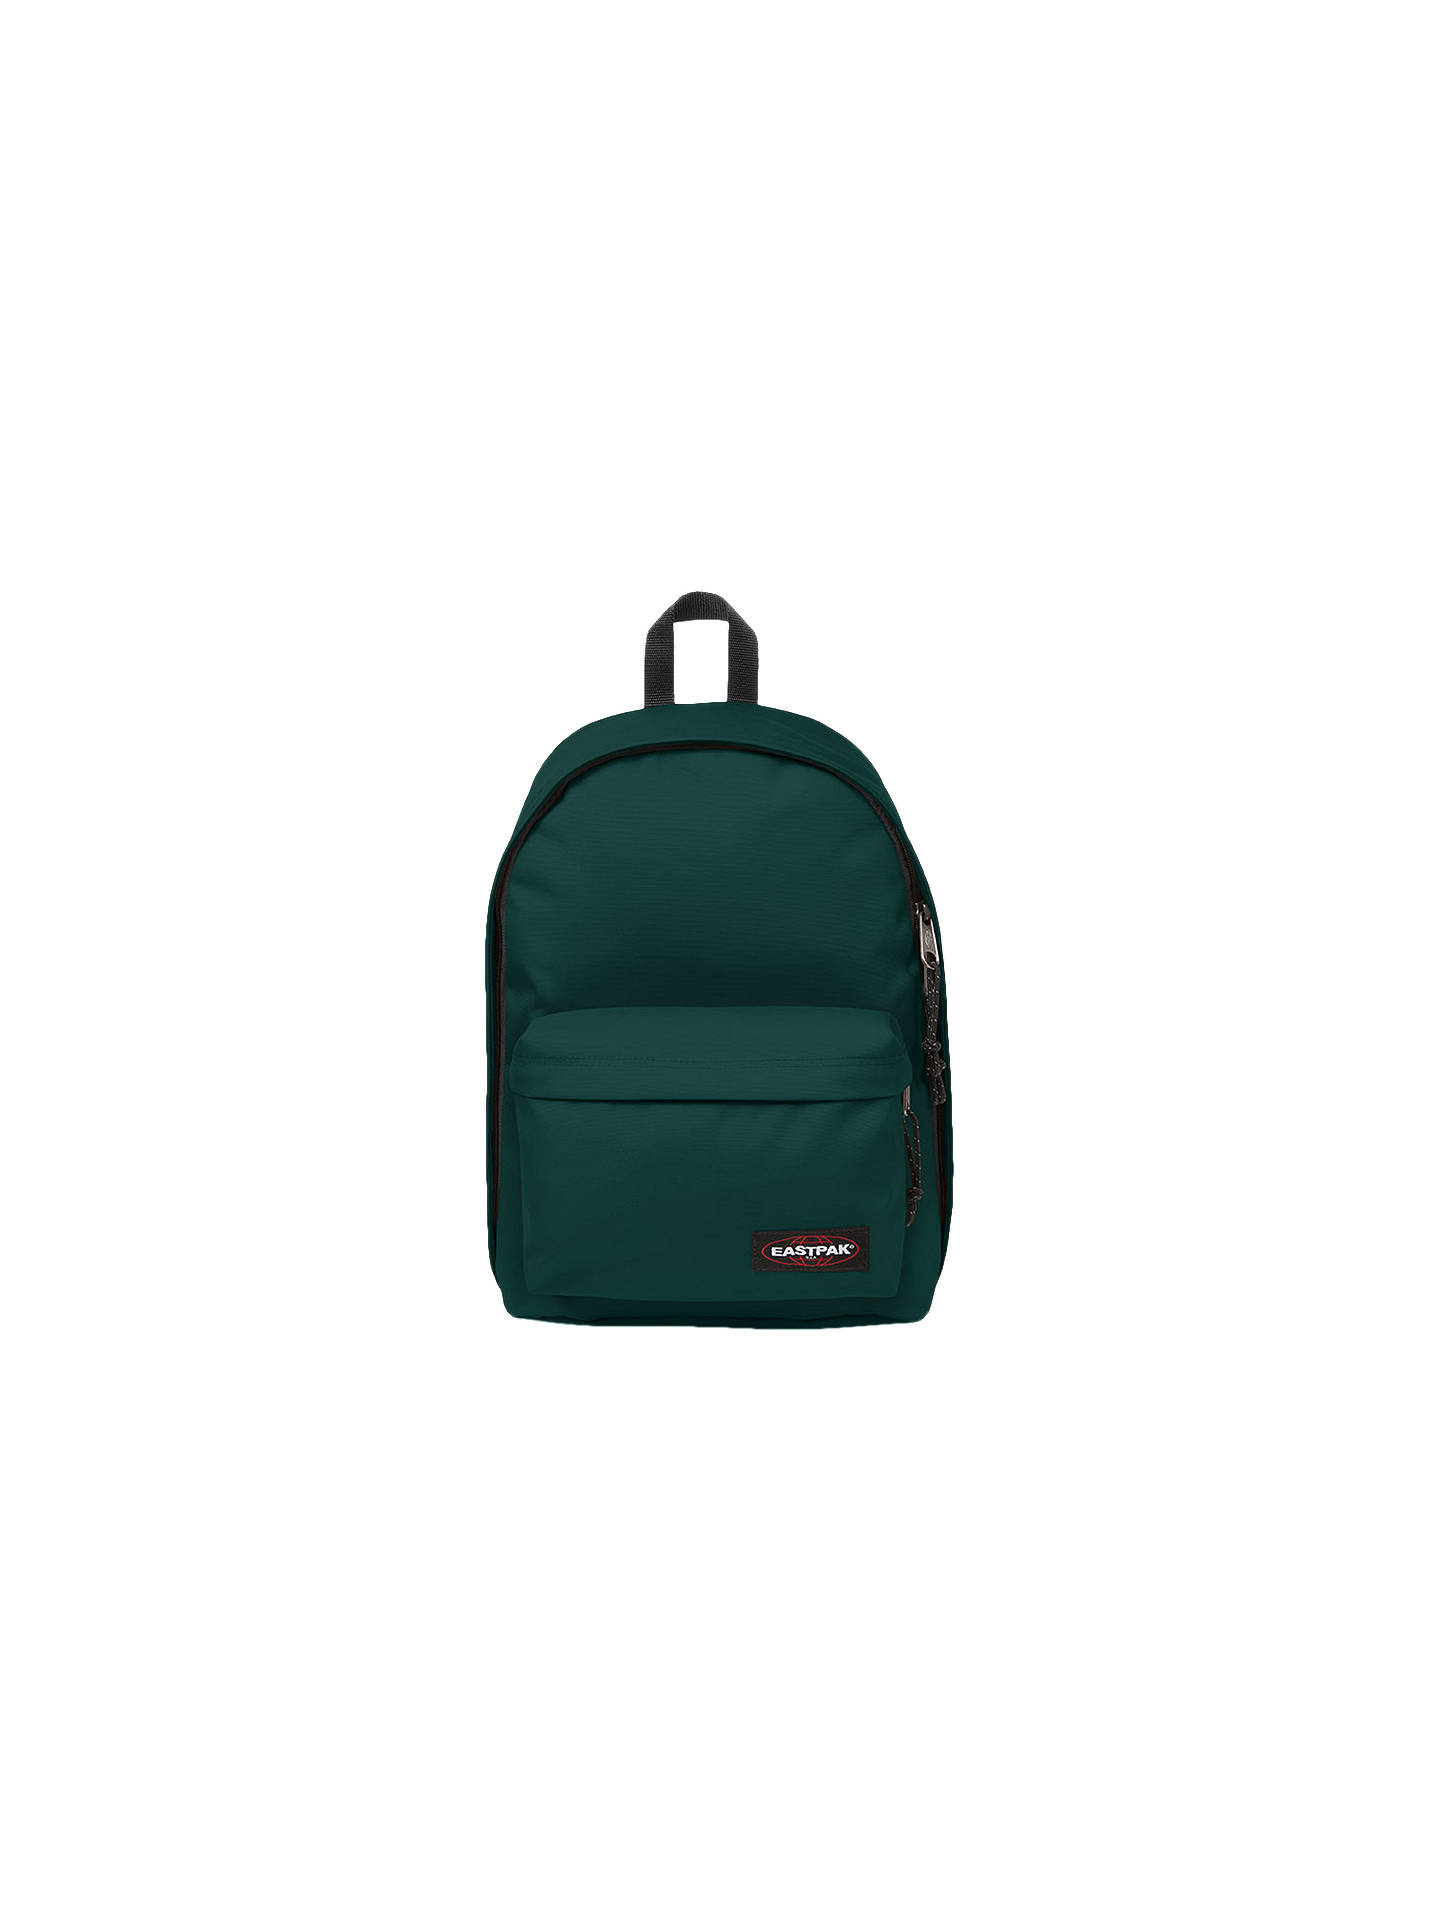 82c9d0b6f4 Buy Eastpak Out Of Office Backpack